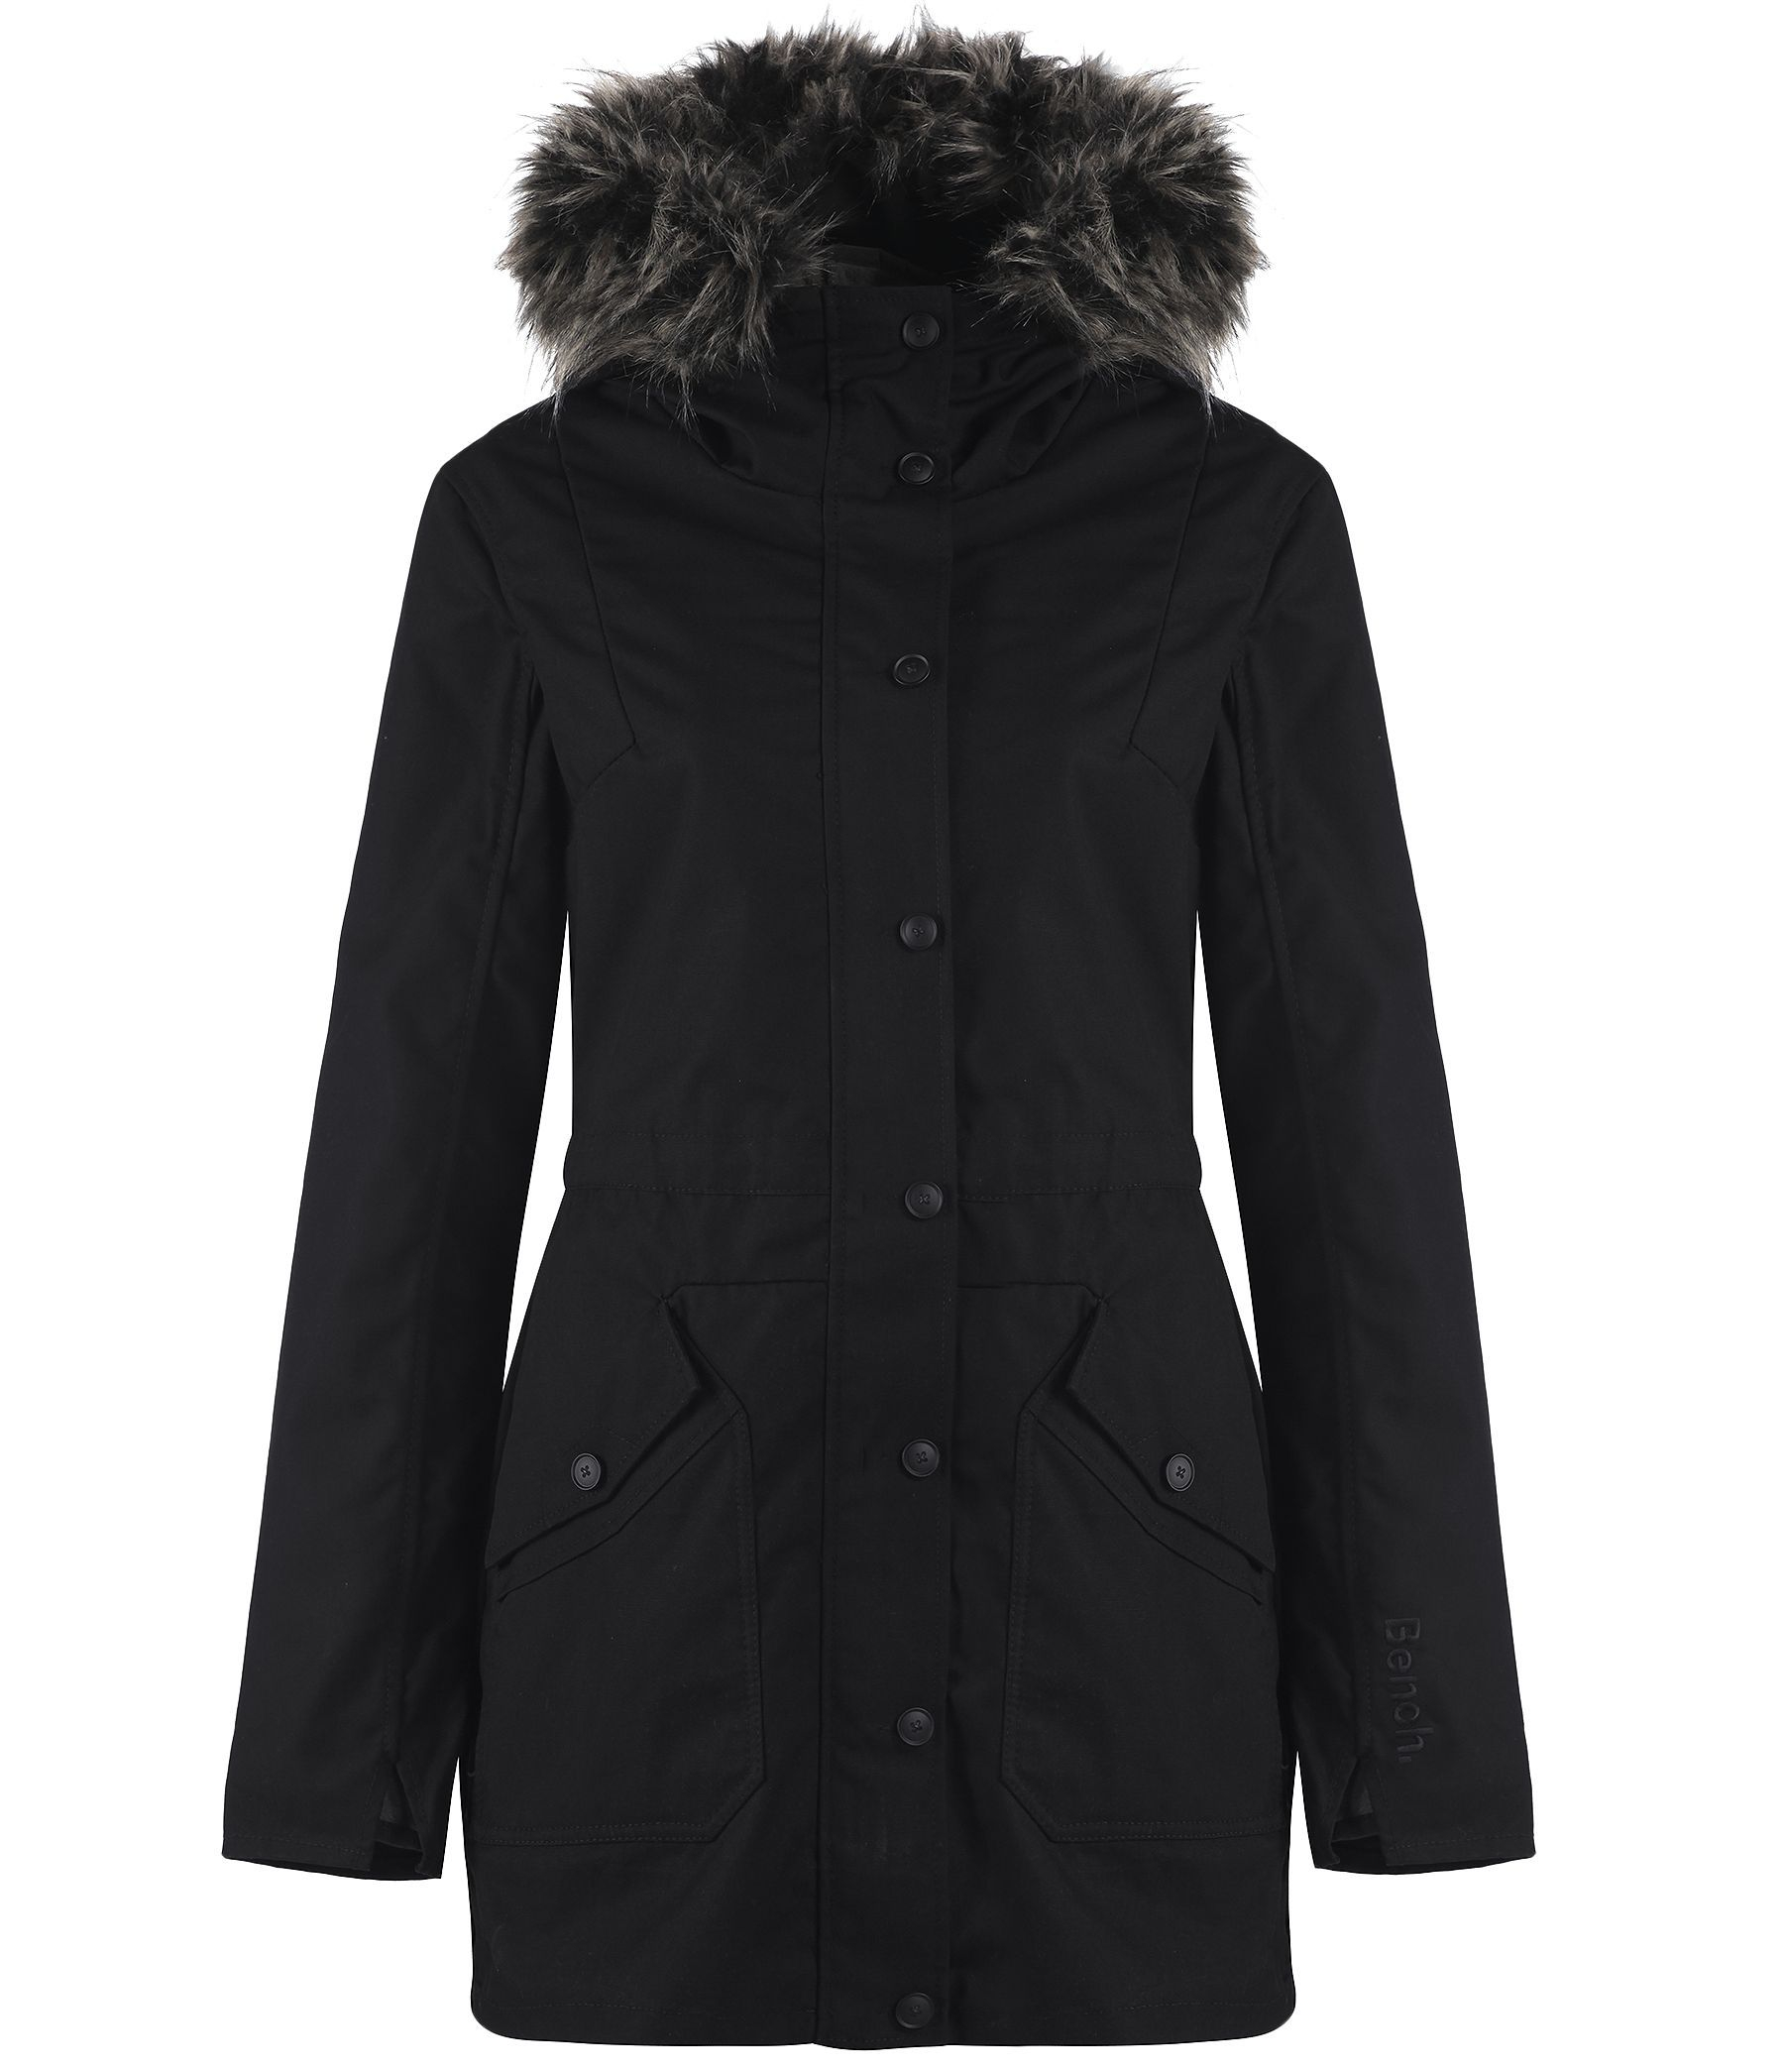 Bench recure 3 in 1 hooded parka jacket